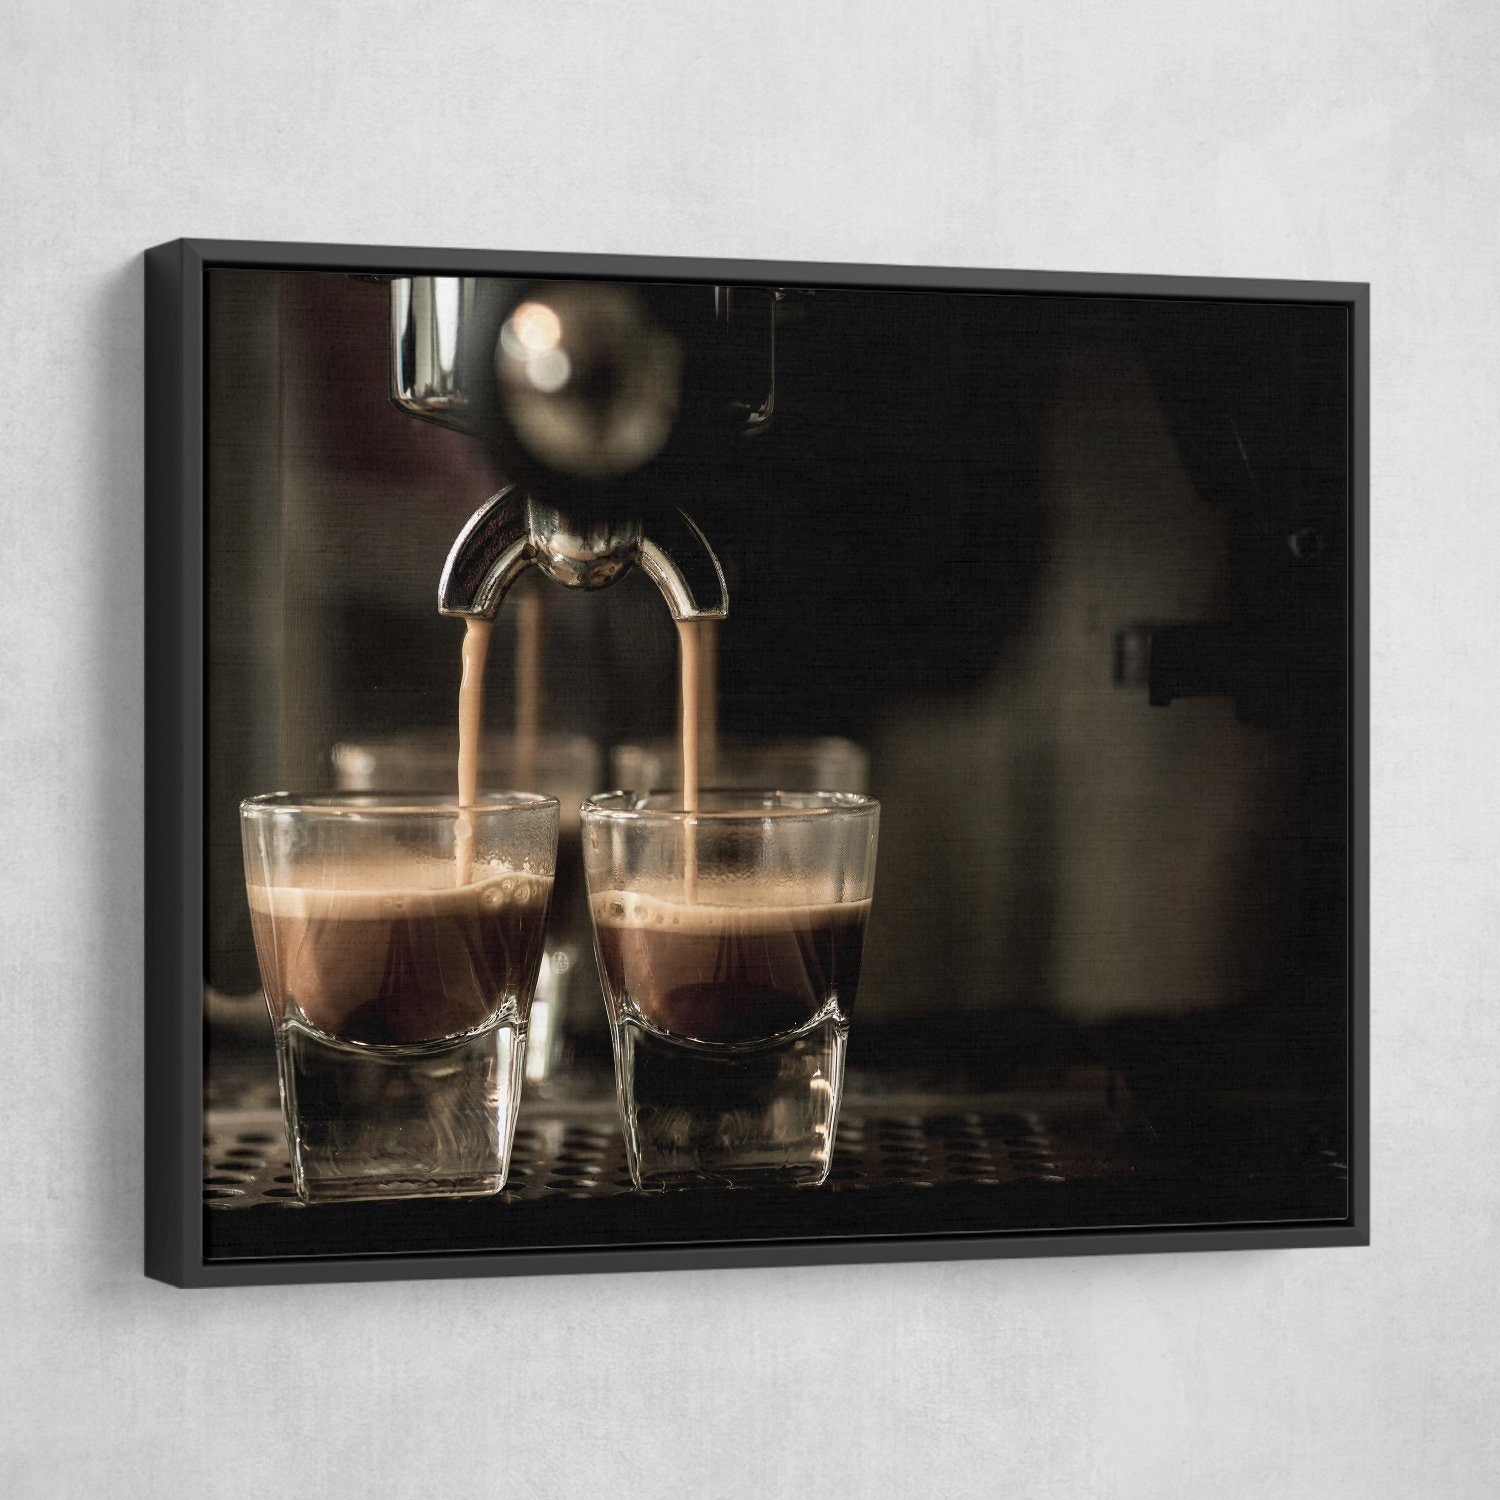 Coffee Machine wall art black floating frame